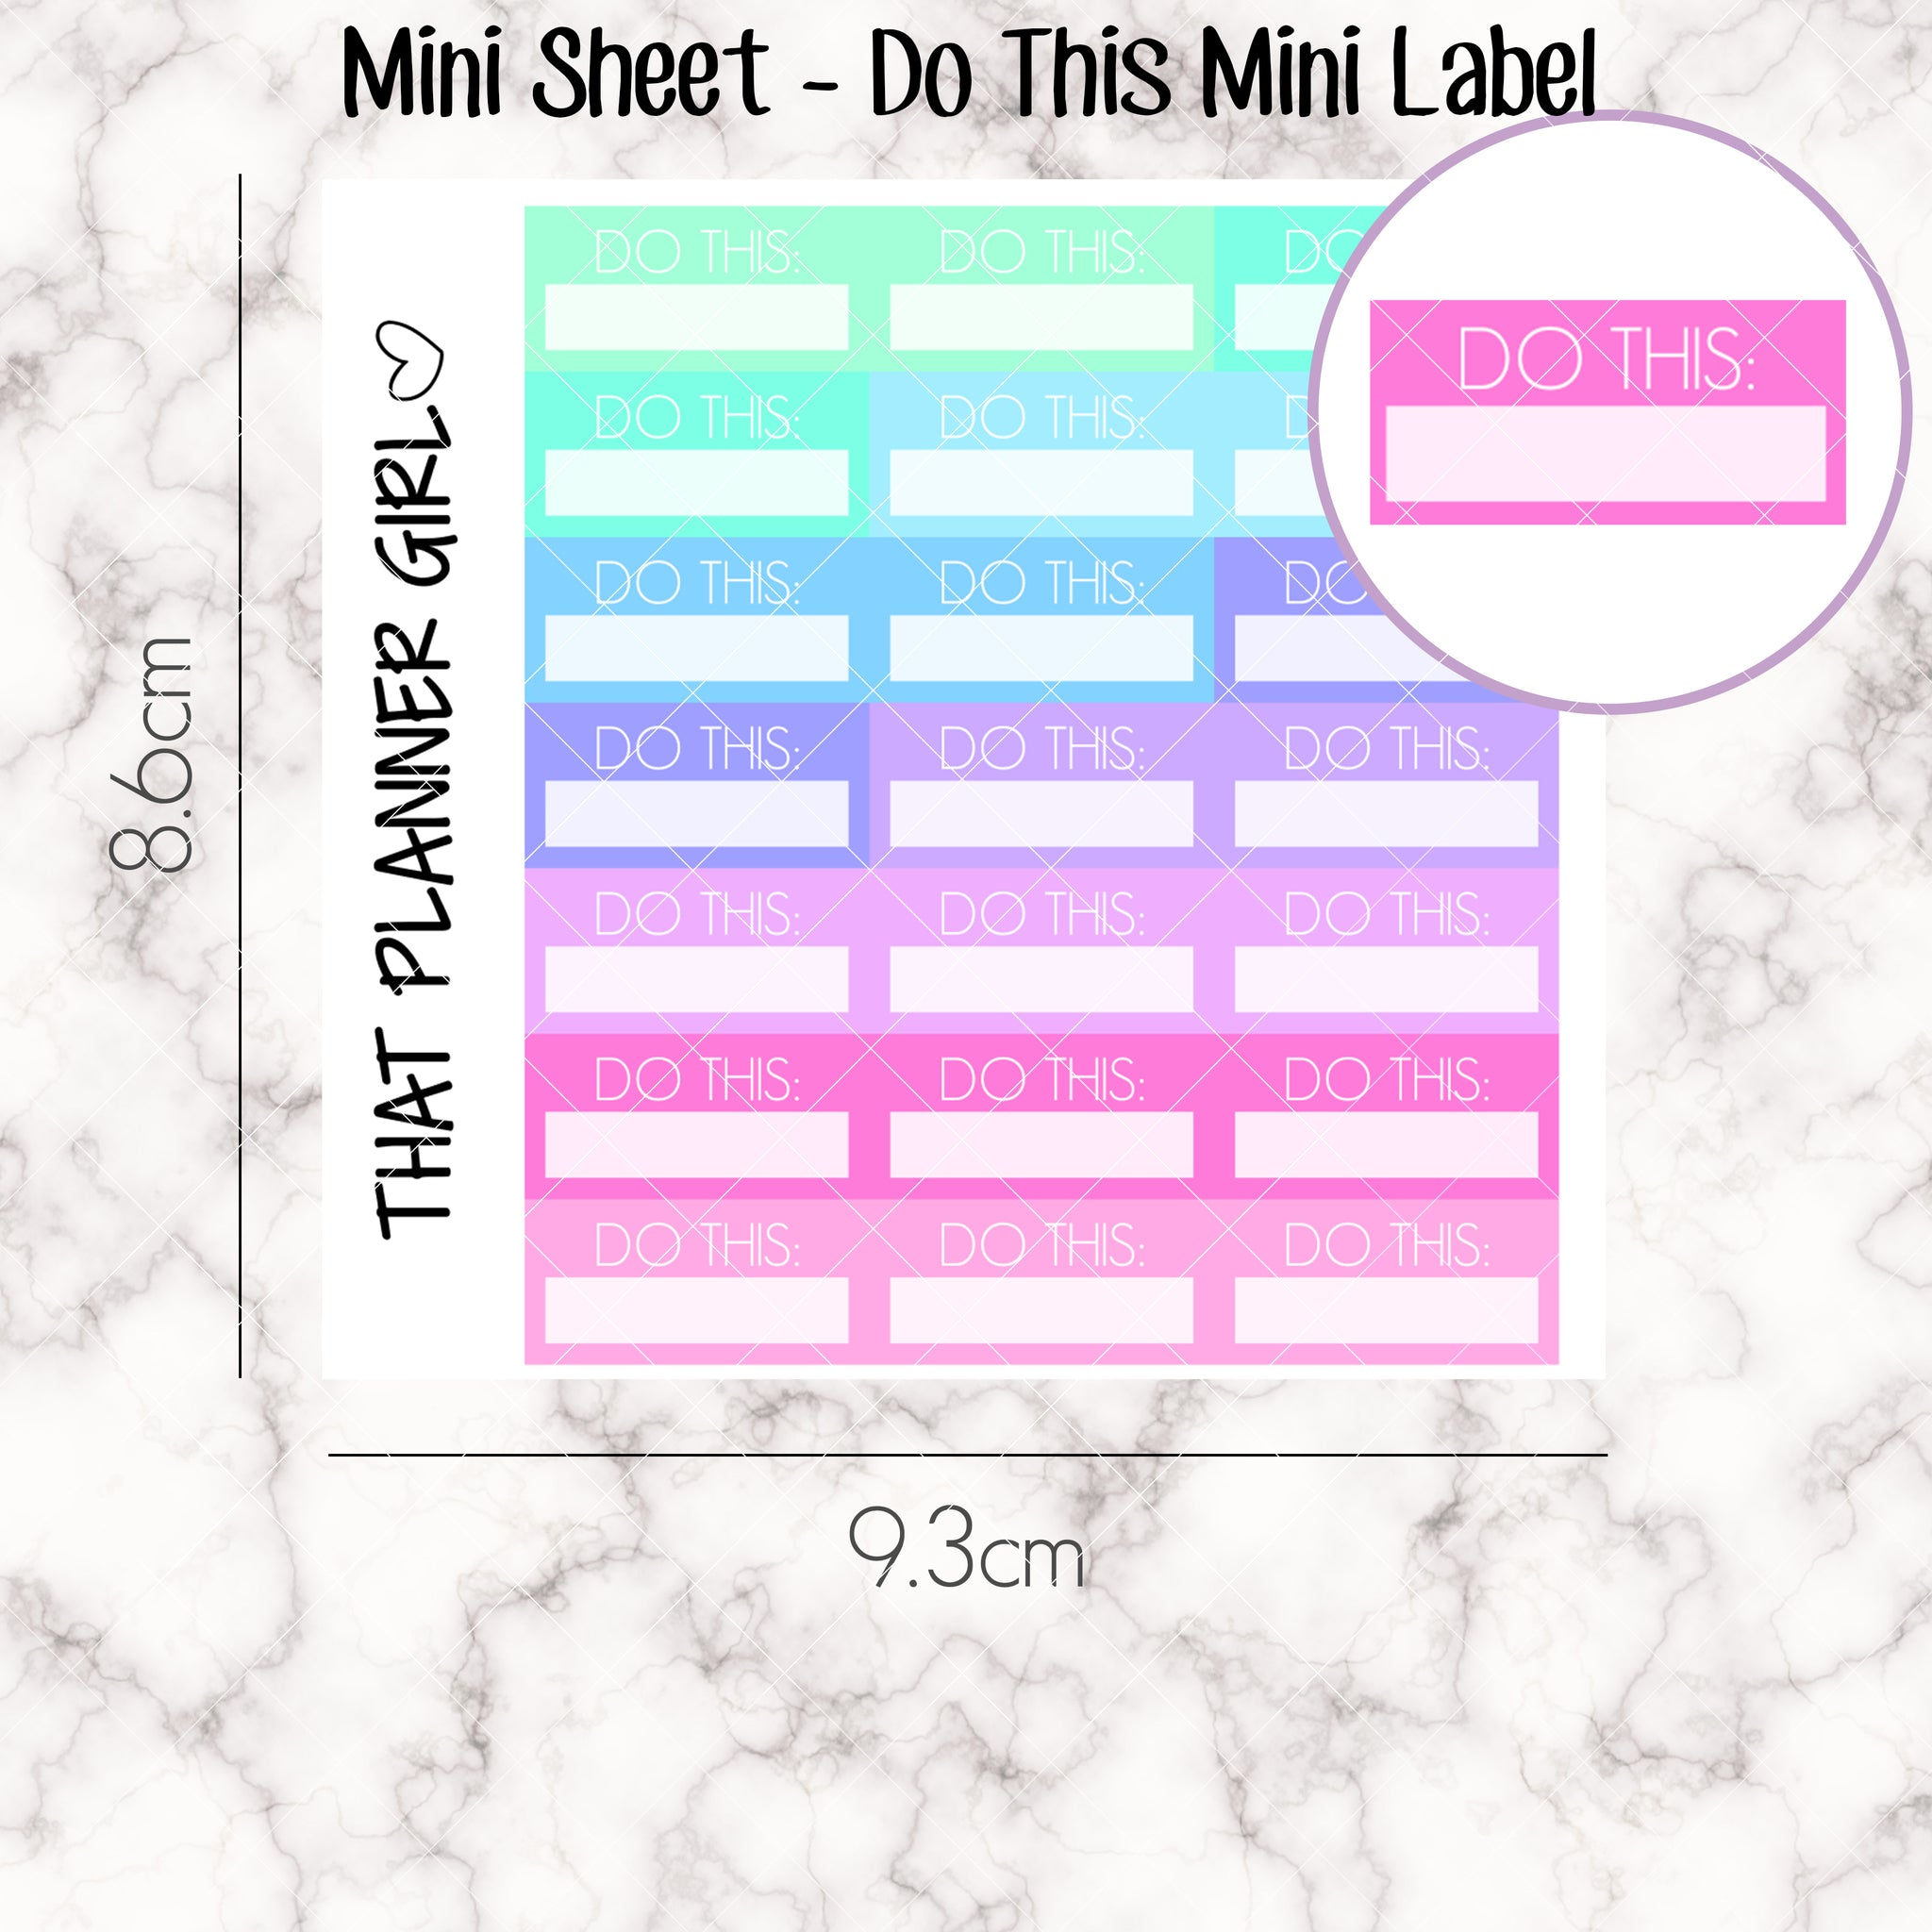 MINI SHEET MONDAY - Mini DO THIS Label Strip